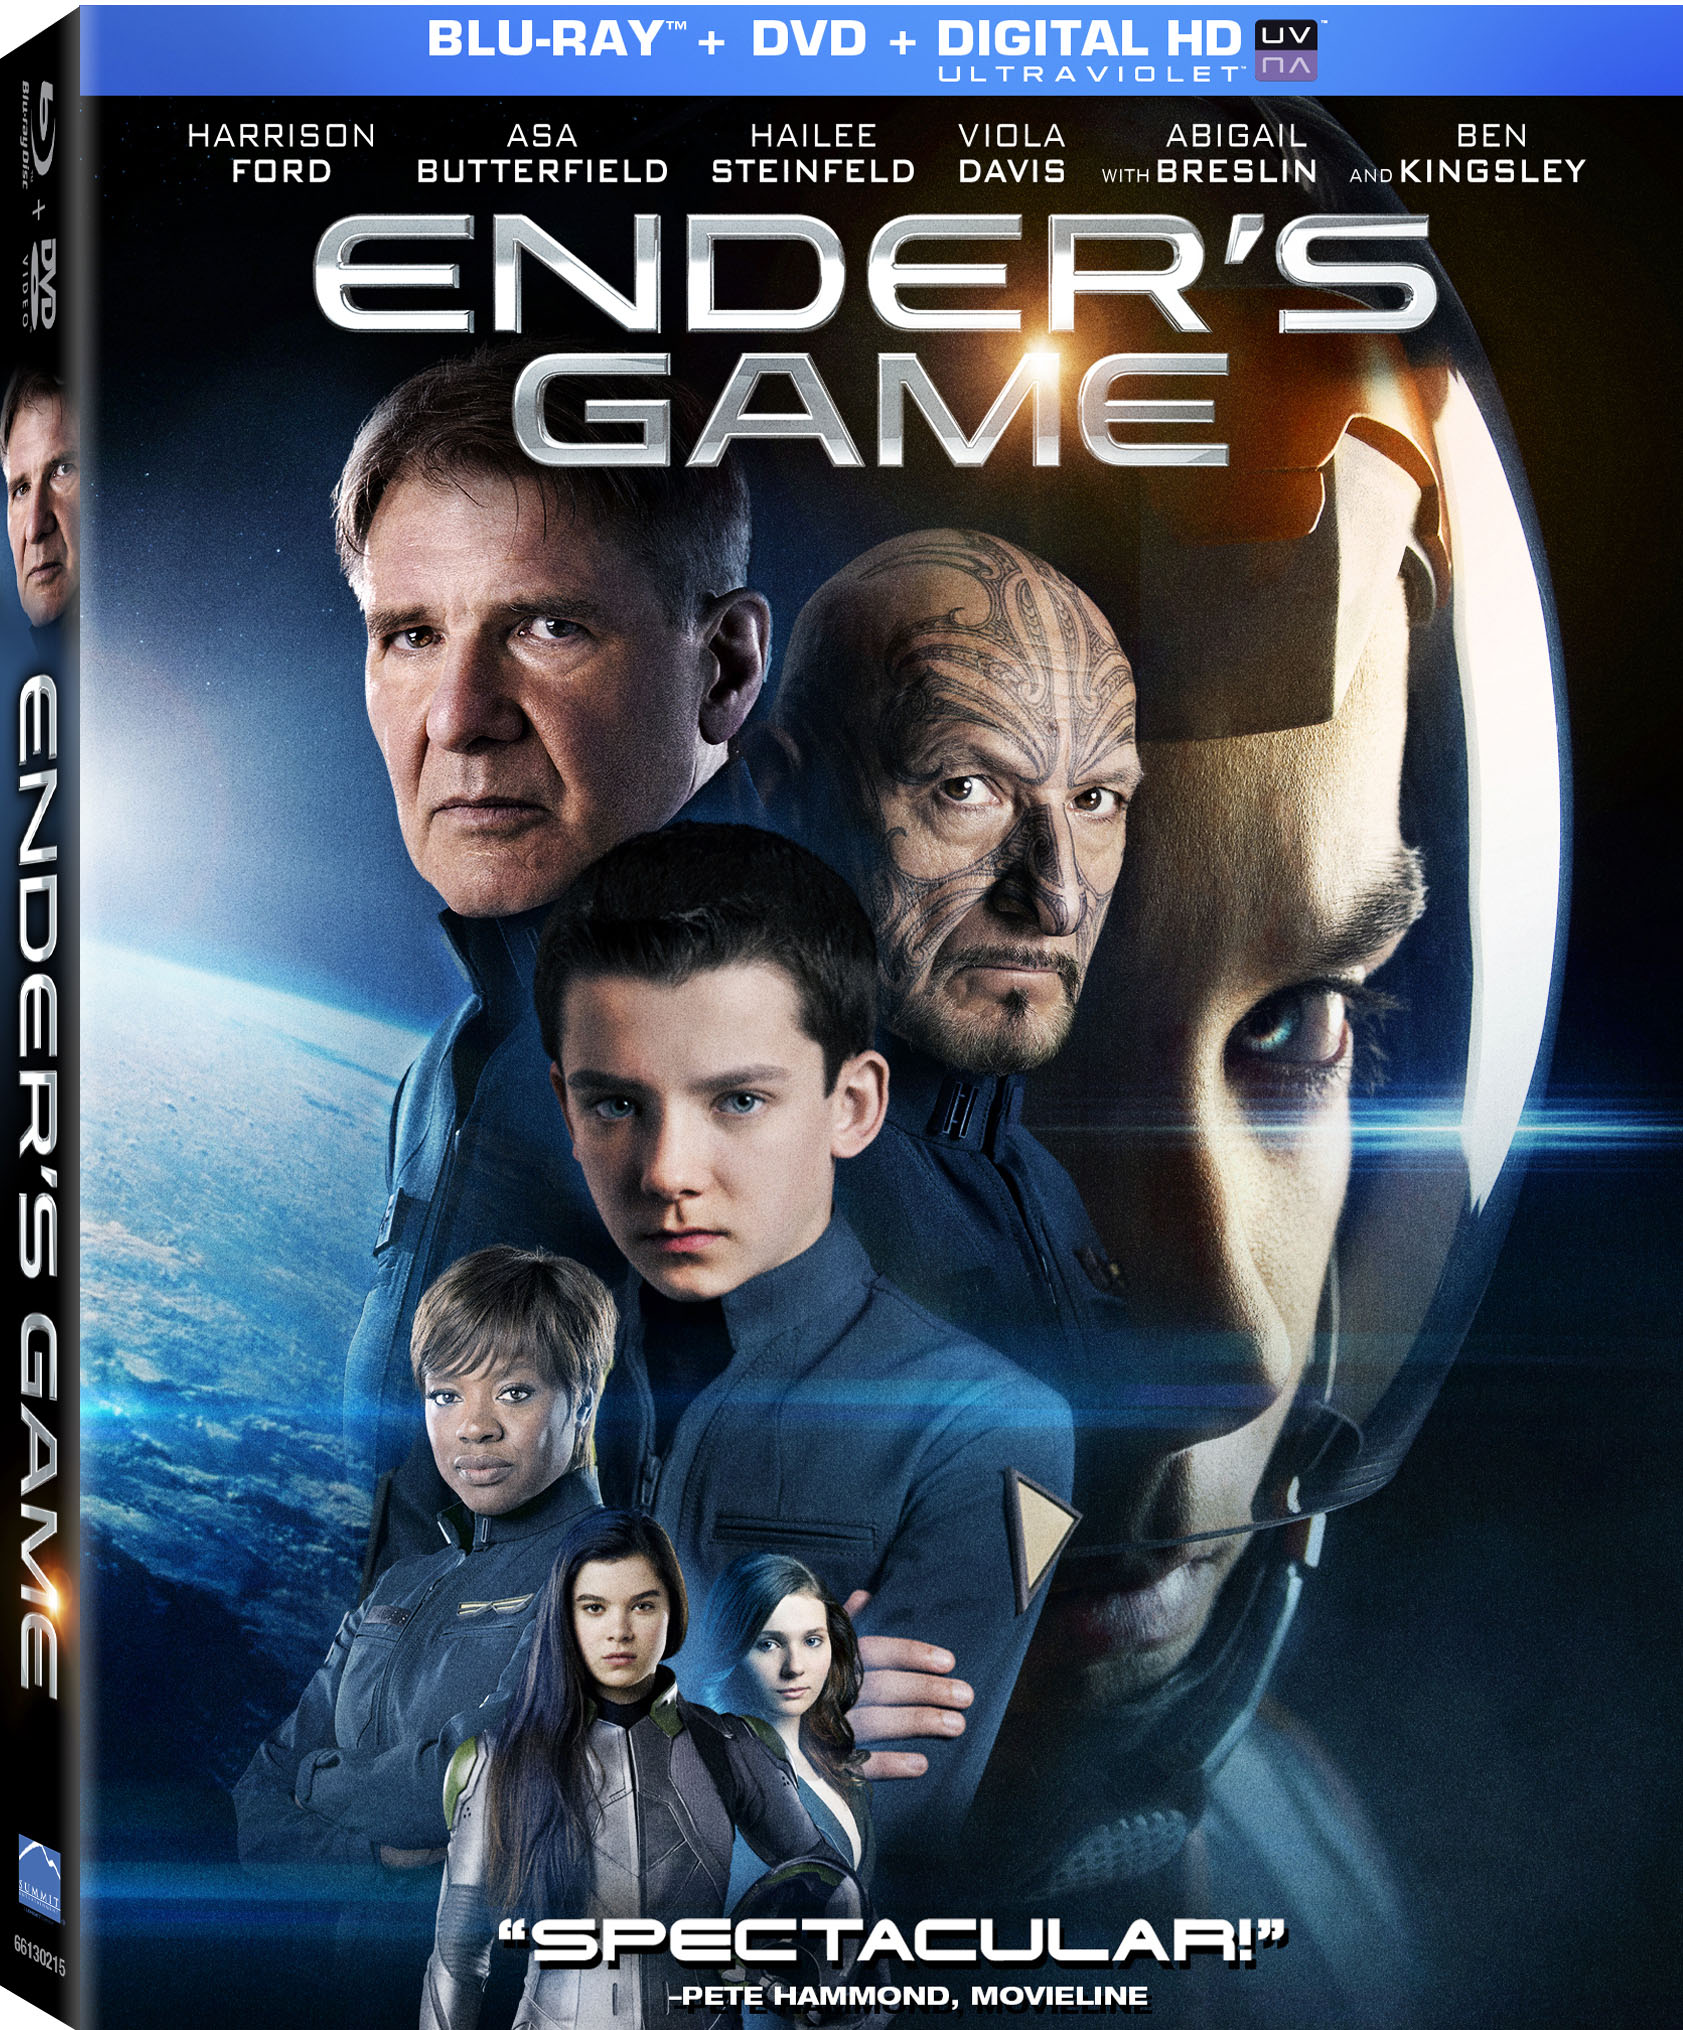 Exclusive: Ender's Game Blu-ray Announcement and Preview